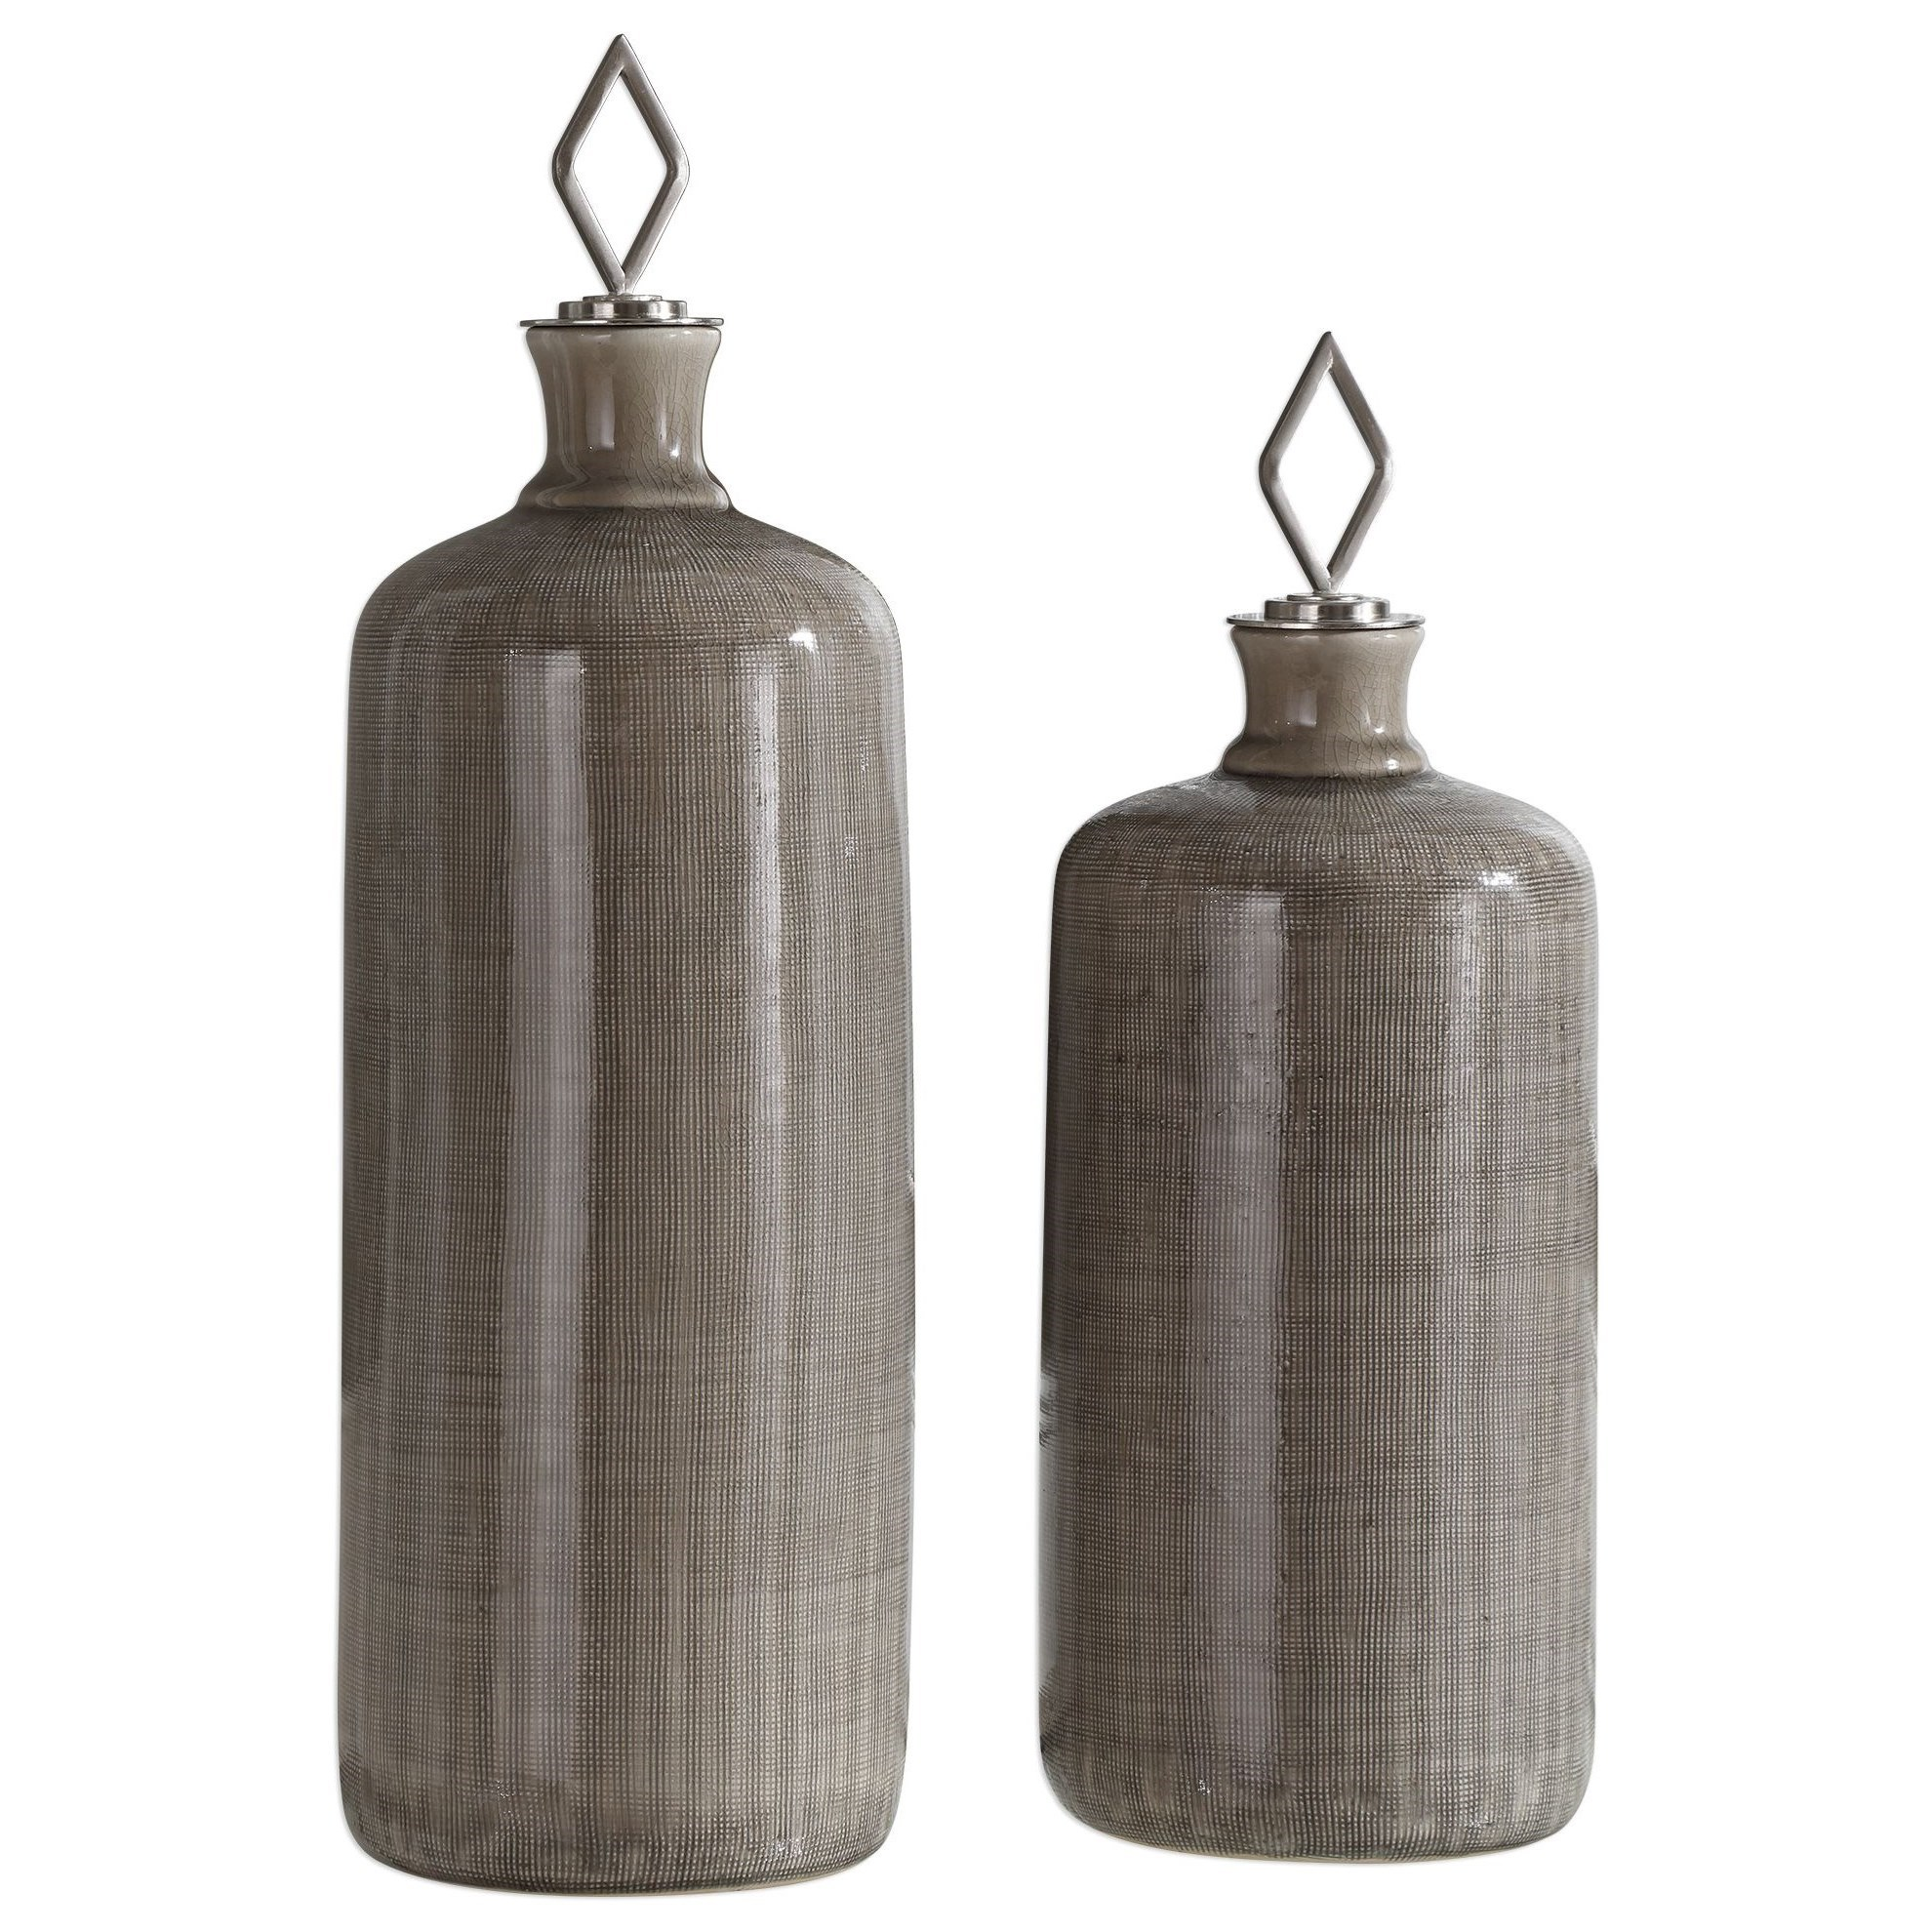 Accessories Dhara Taupe Glaze Bottles, S/2 by Uttermost at Dunk & Bright Furniture